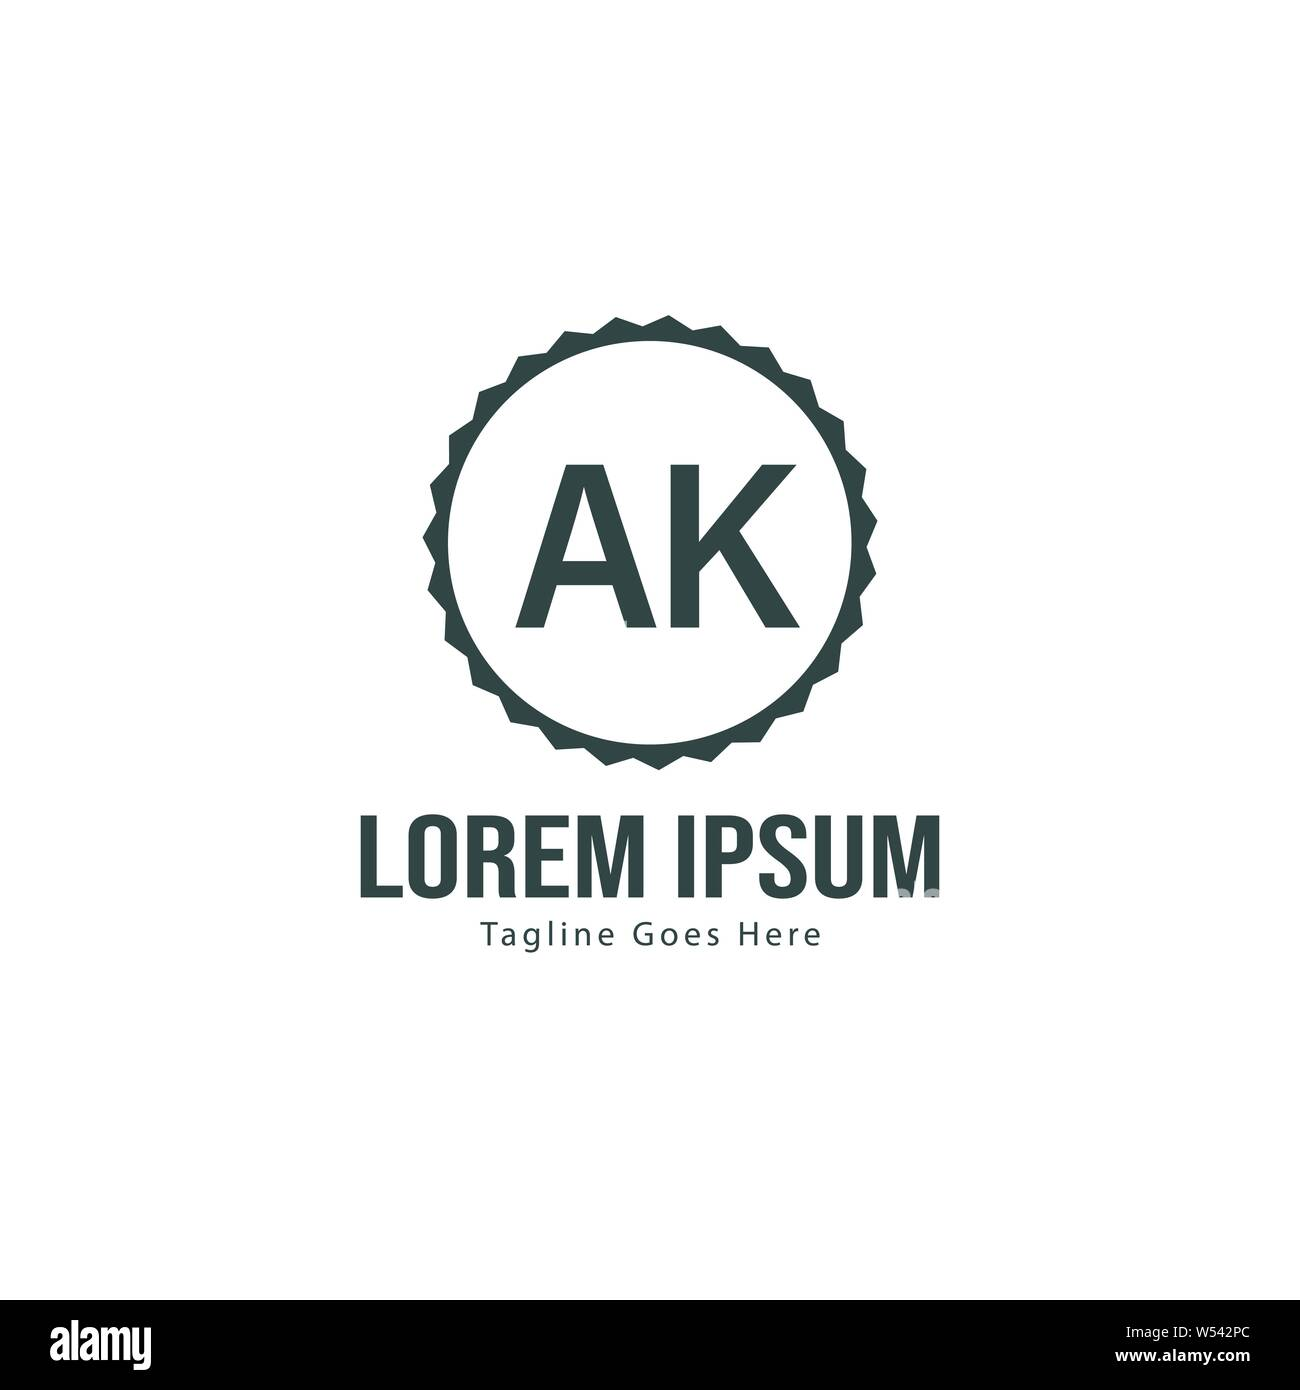 ak letter logo design creative modern ak letters icon illustration design stock vector image art alamy alamy